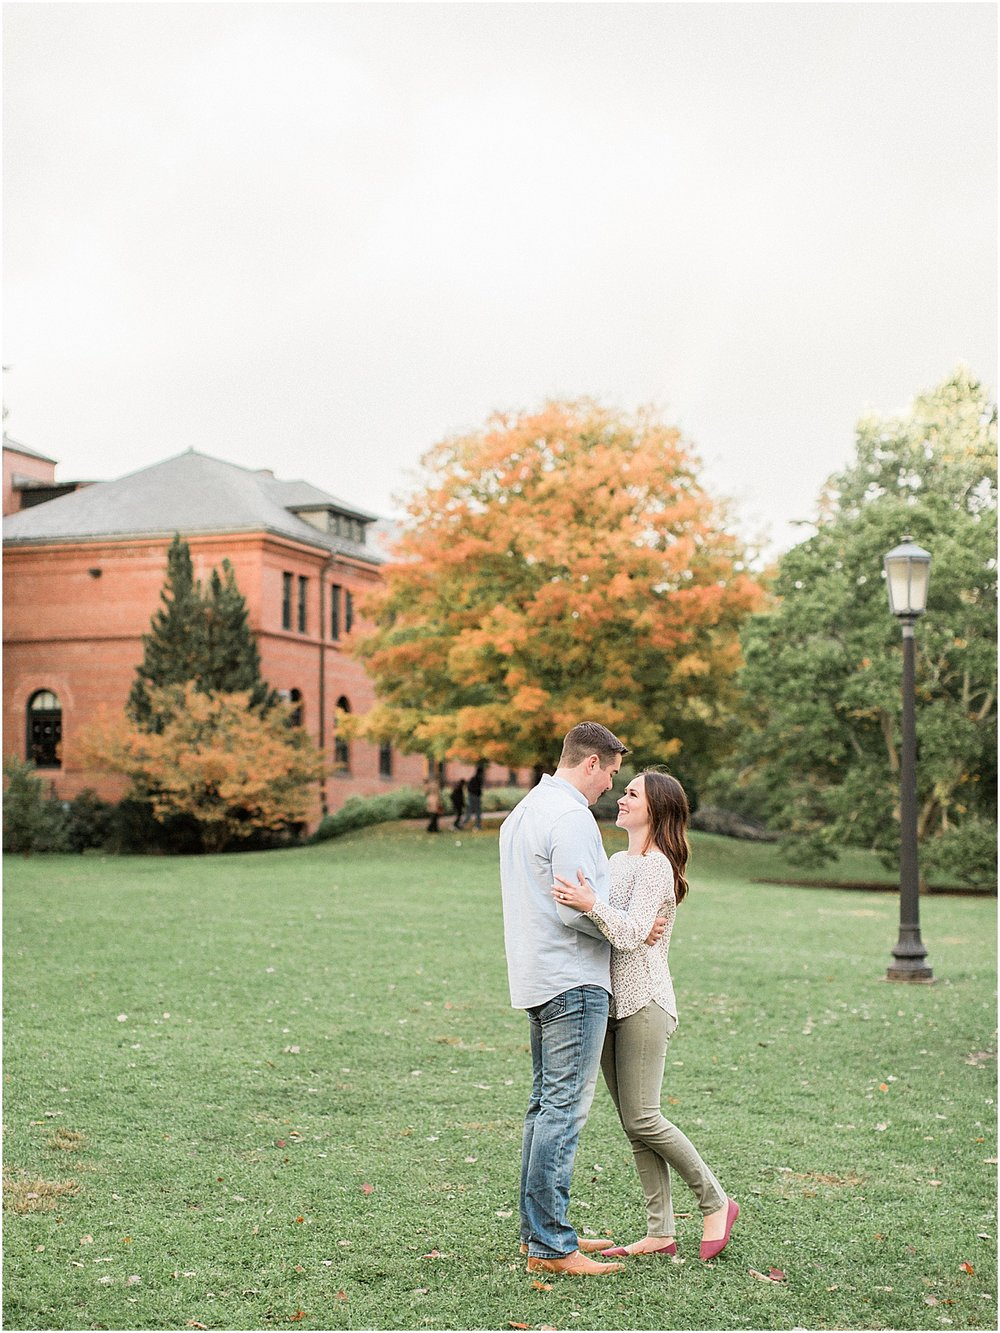 jessica_john_engagement_arnold_arboretum_fall_cape_cod_boston_wedding_photographer_meredith_jane_photography_photo_1724.jpg